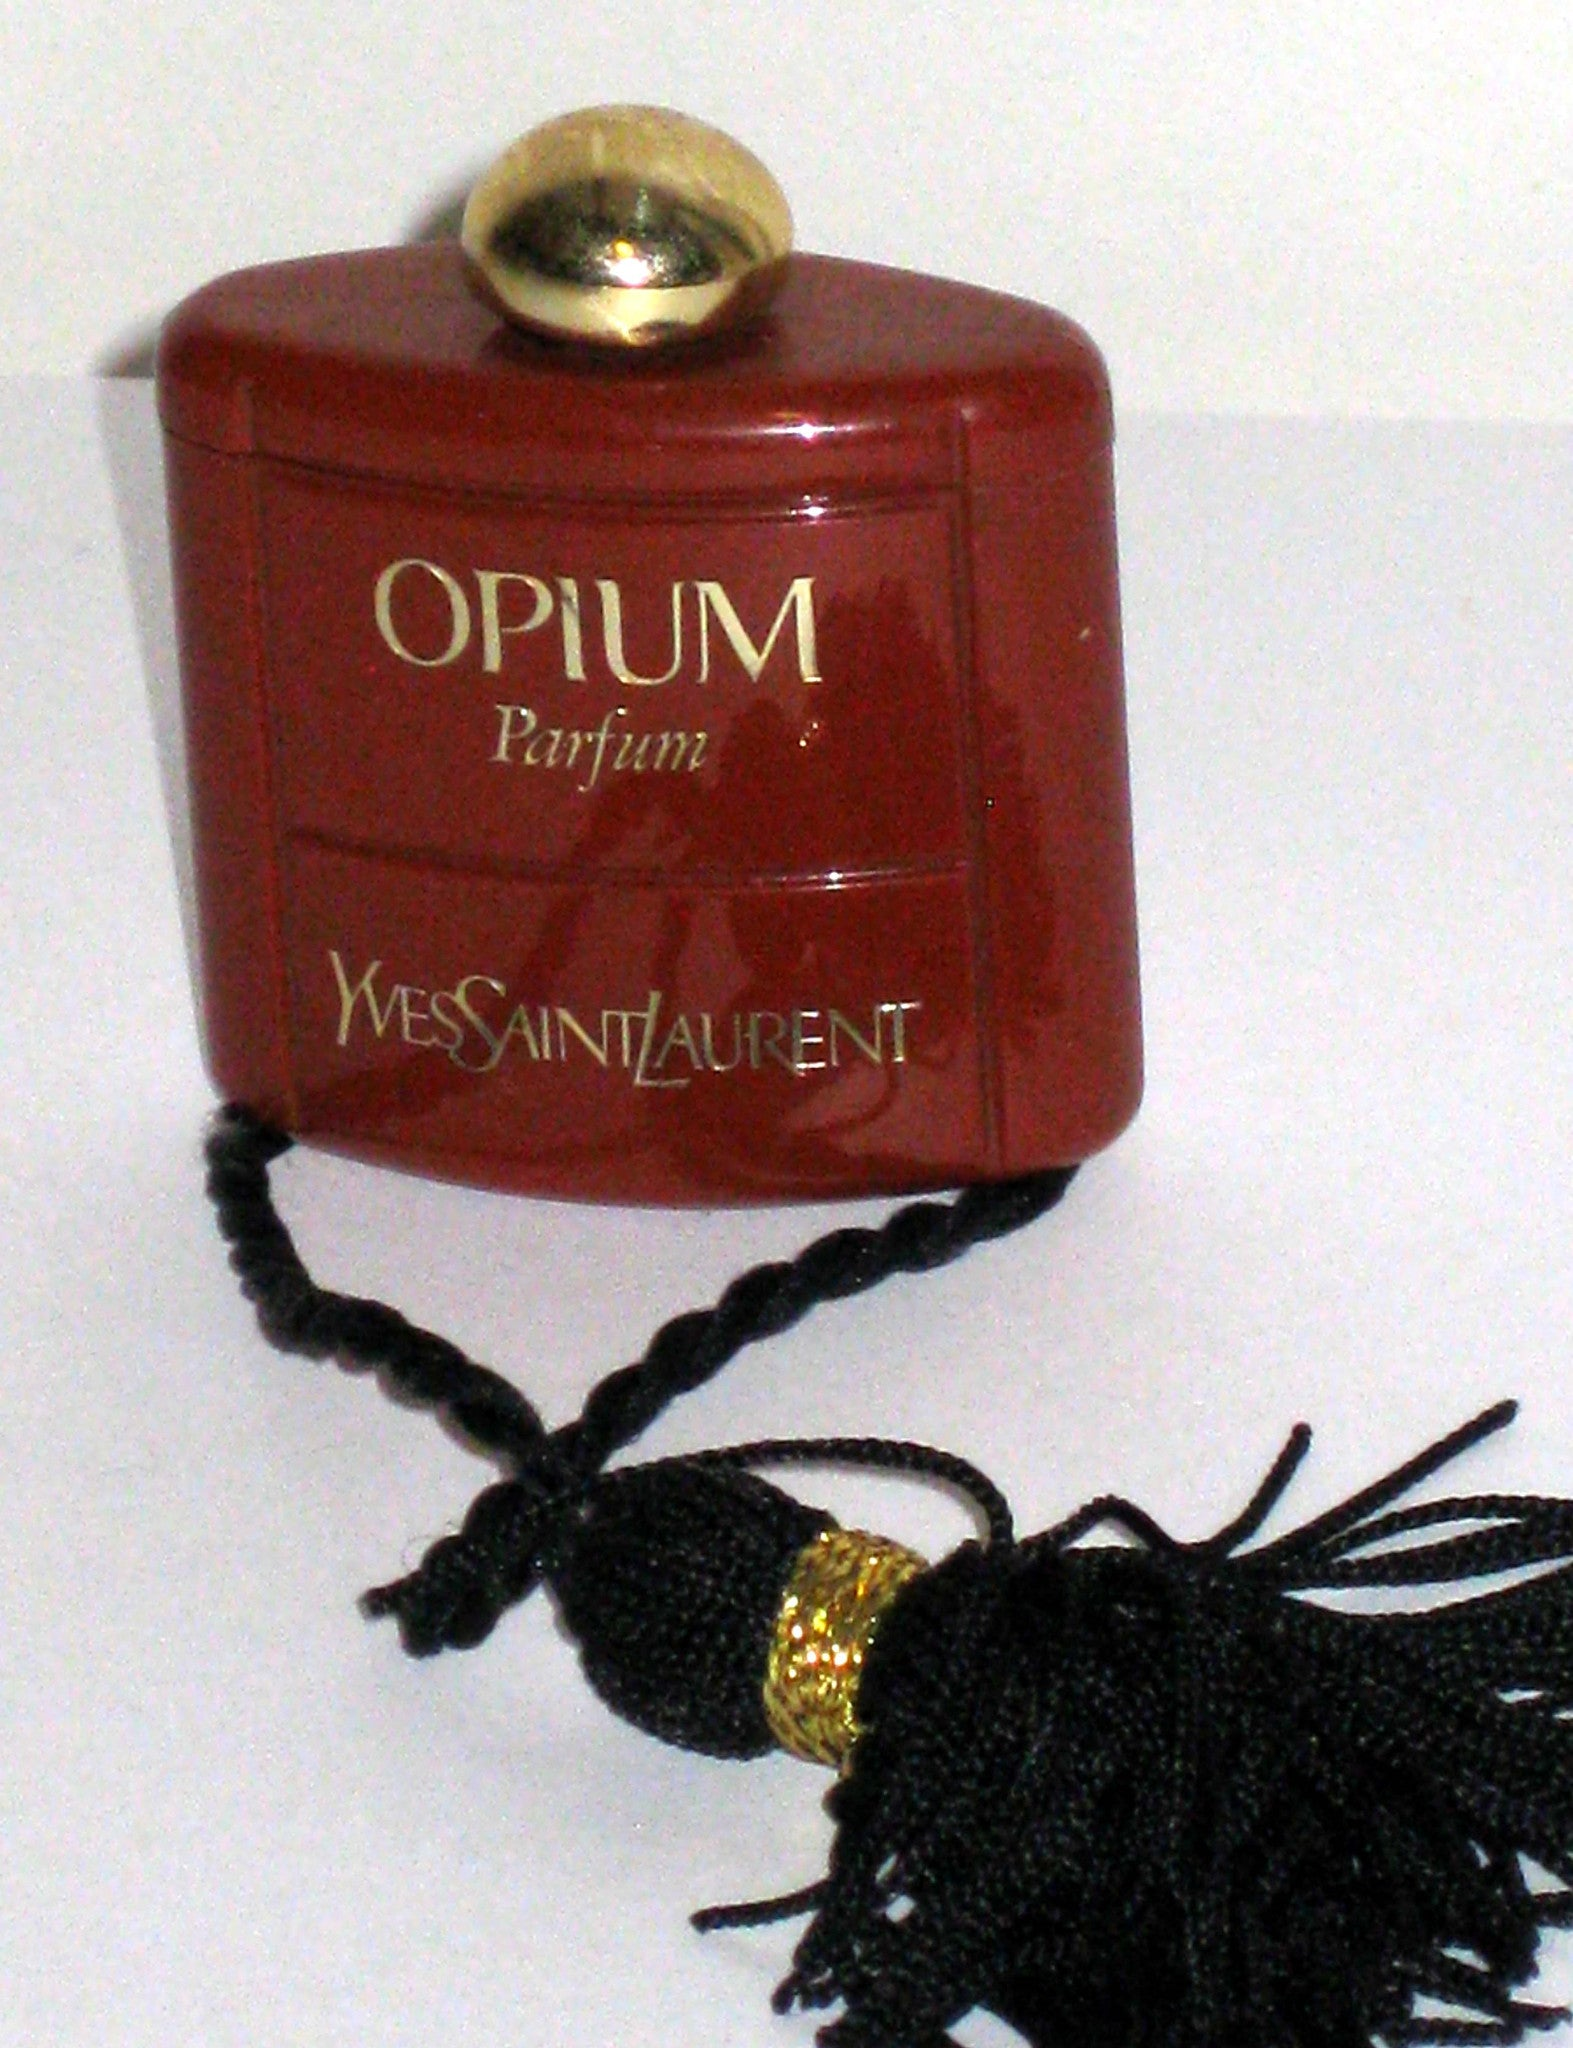 Yves Saint Laurent Opium Parfum Mini